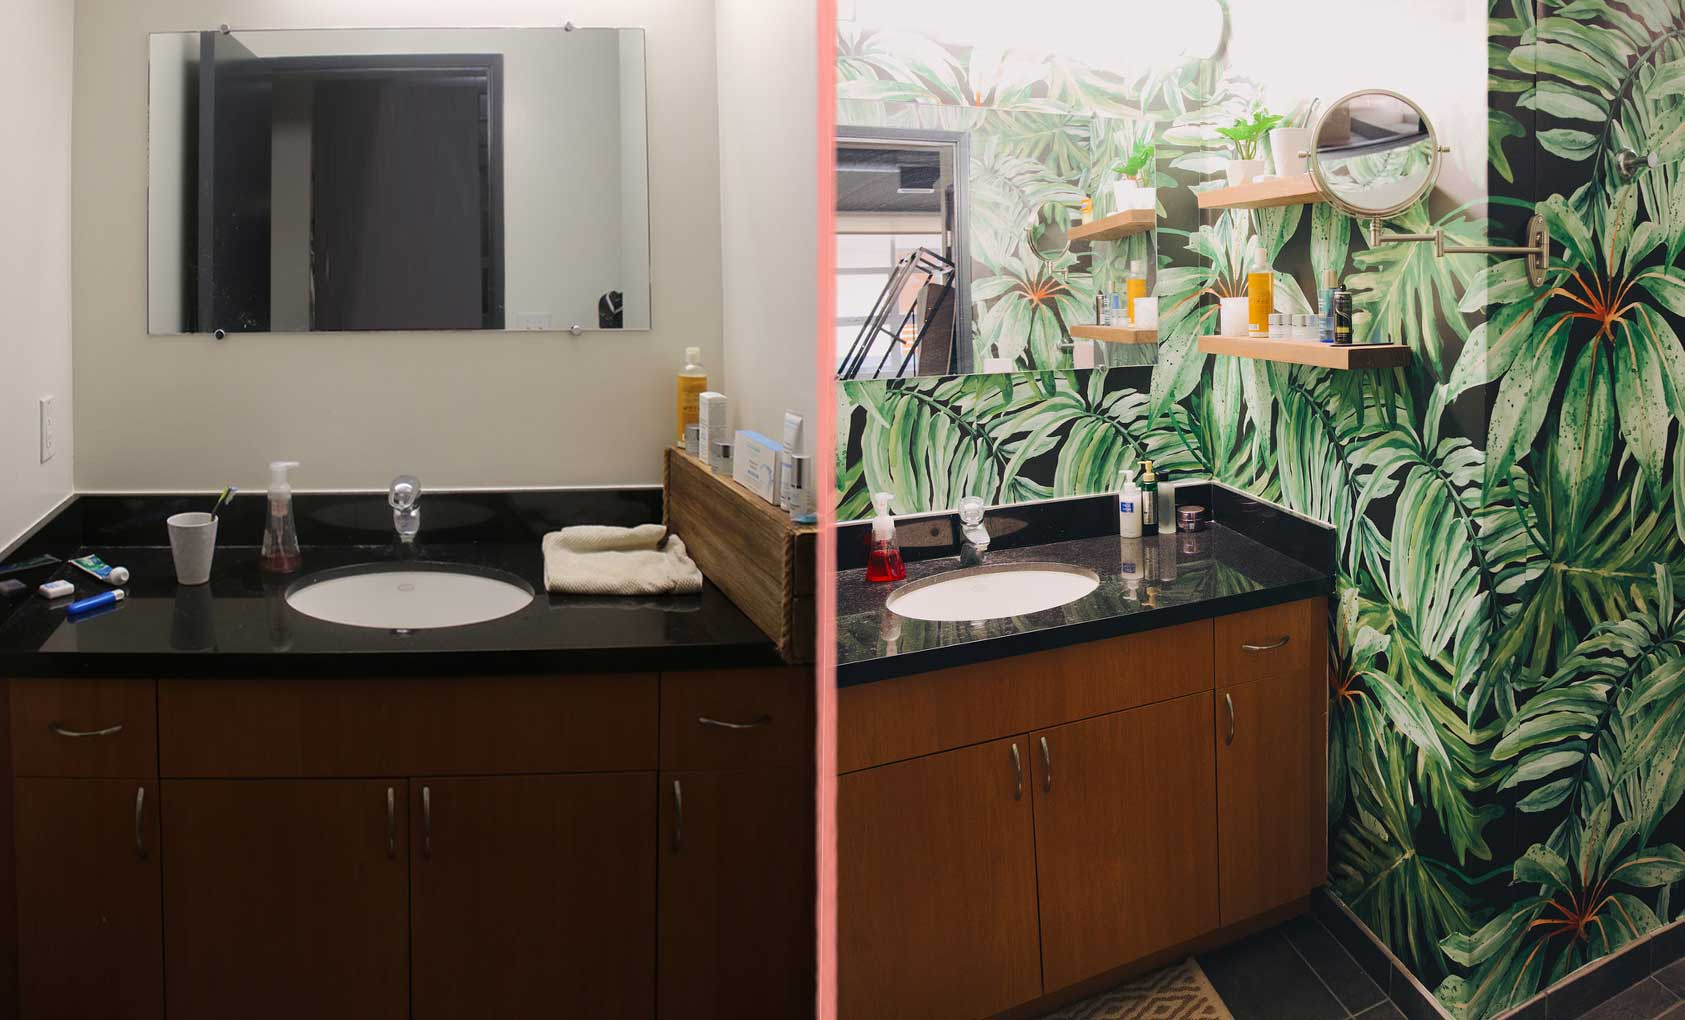 Before & After: A Rental Bathroom Gone Wild, Design*Sponge